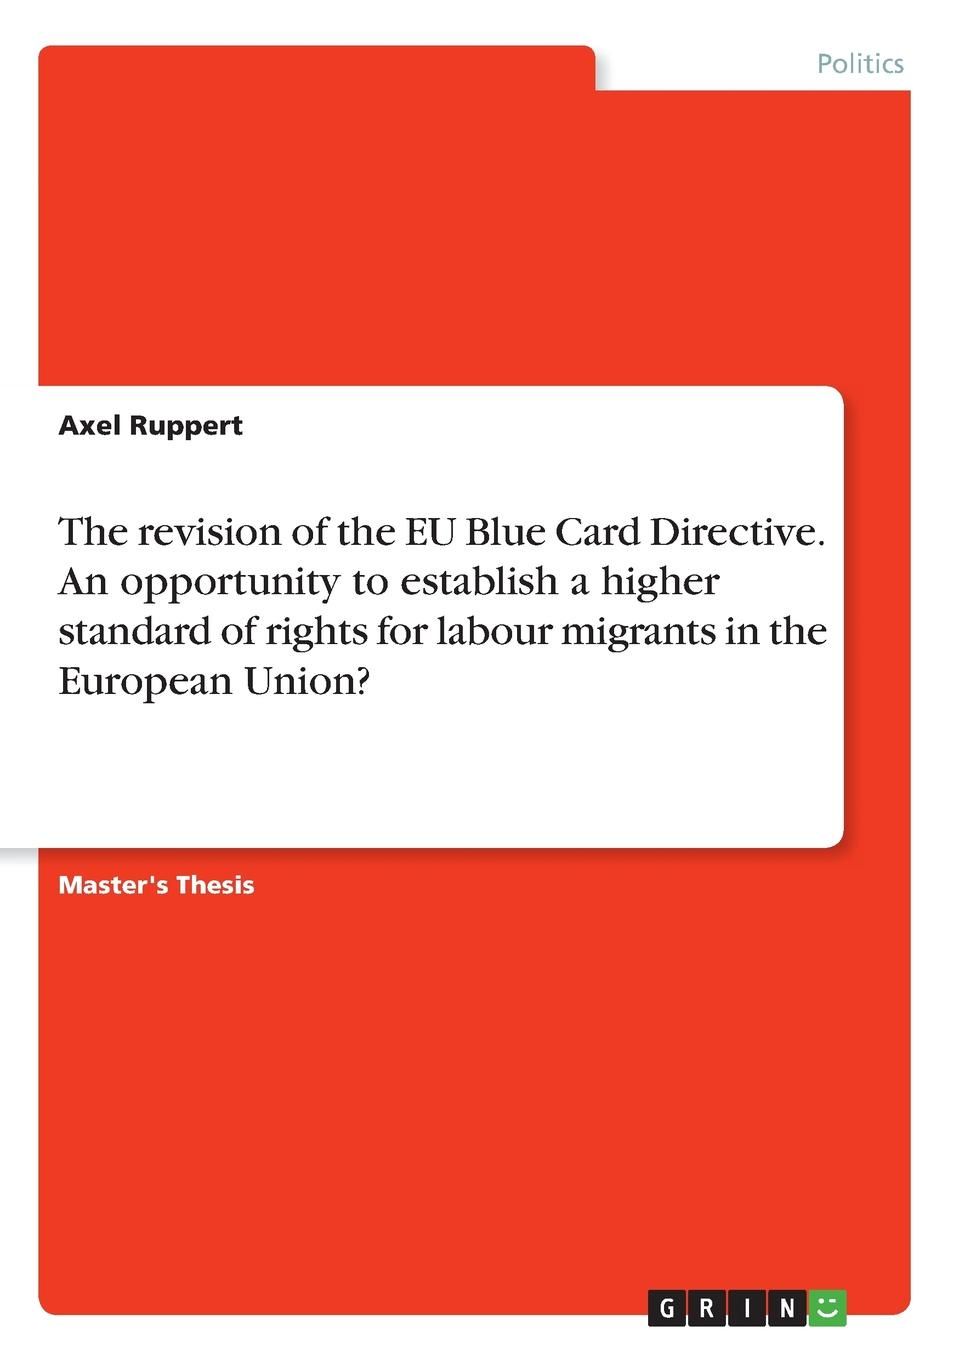 Axel Ruppert The revision of the EU Blue Card Directive. An opportunity to establish a higher standard of rights for labour migrants in the European Union. the making of labour law in europe